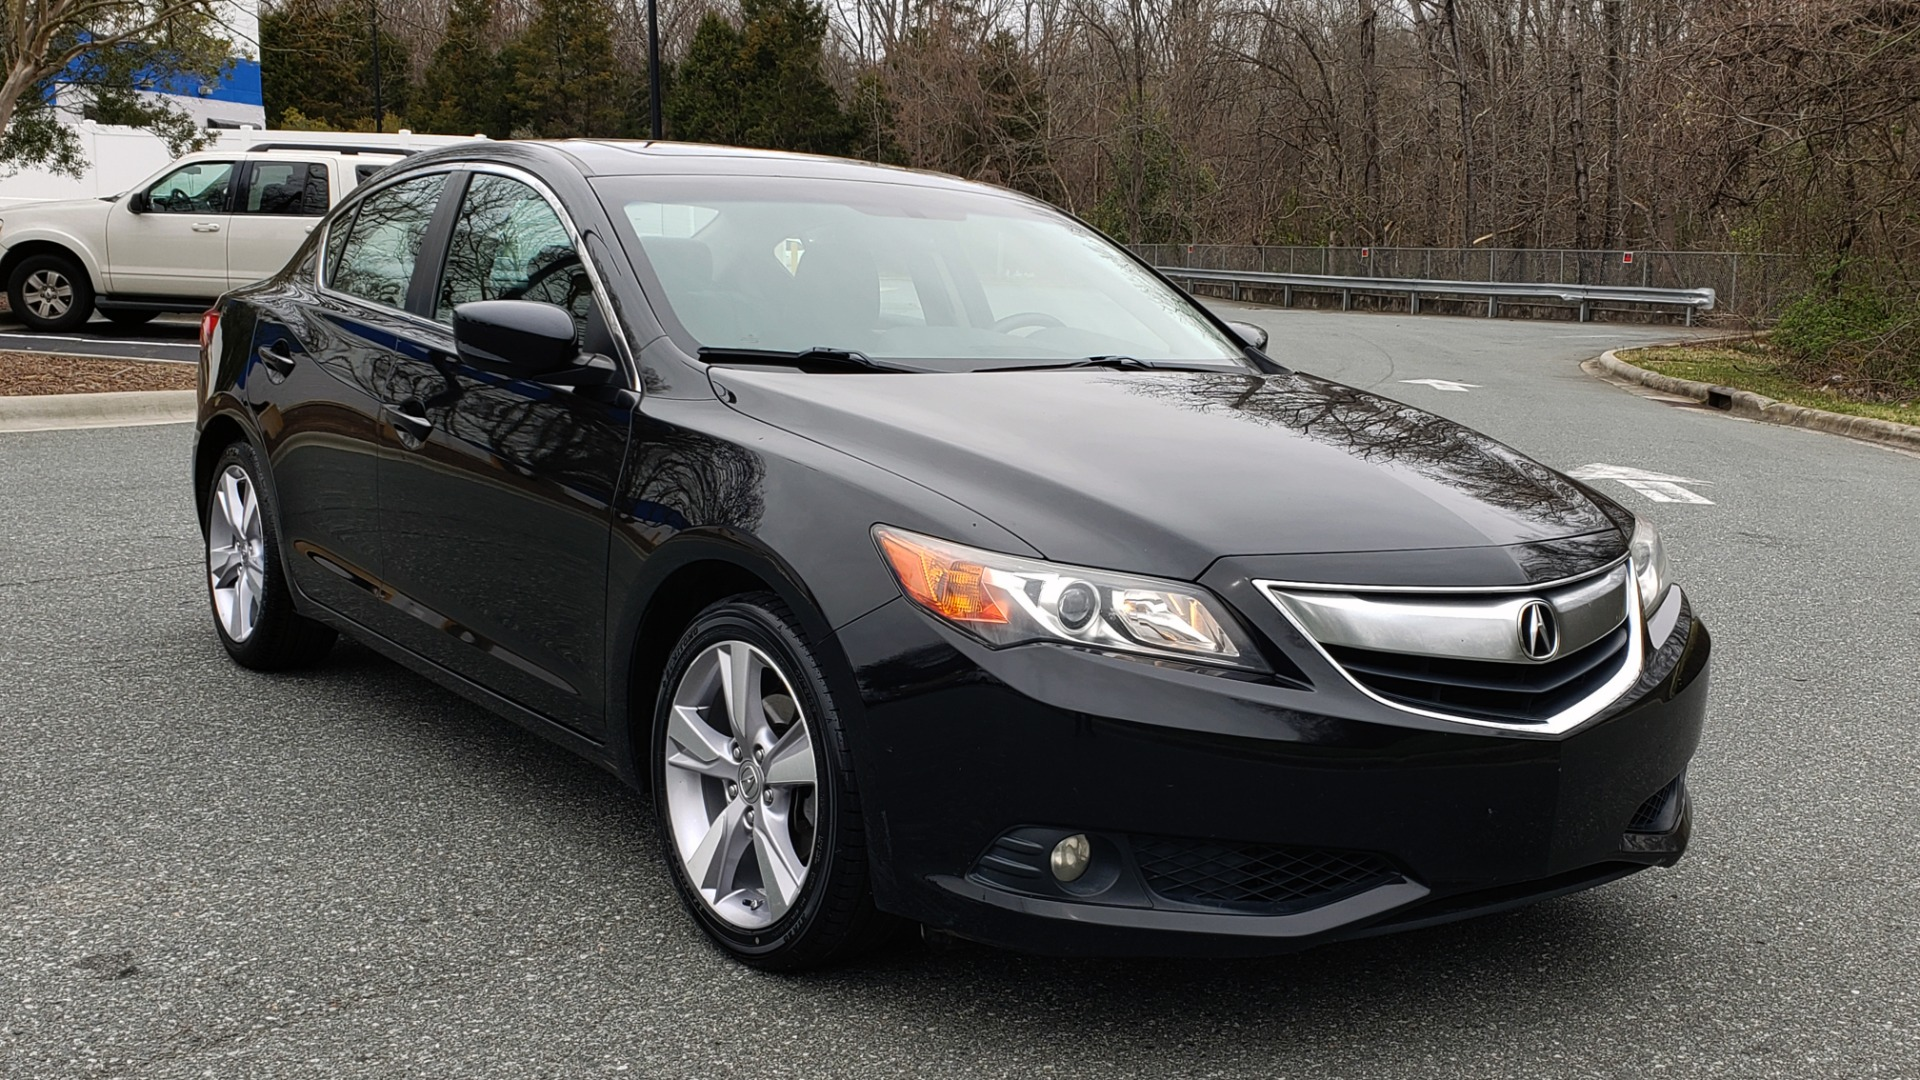 Used 2013 Acura ILX TECH PKG / SUNROOF / NAV / DUAL-ZONE A/C / REARVIEW for sale Sold at Formula Imports in Charlotte NC 28227 4